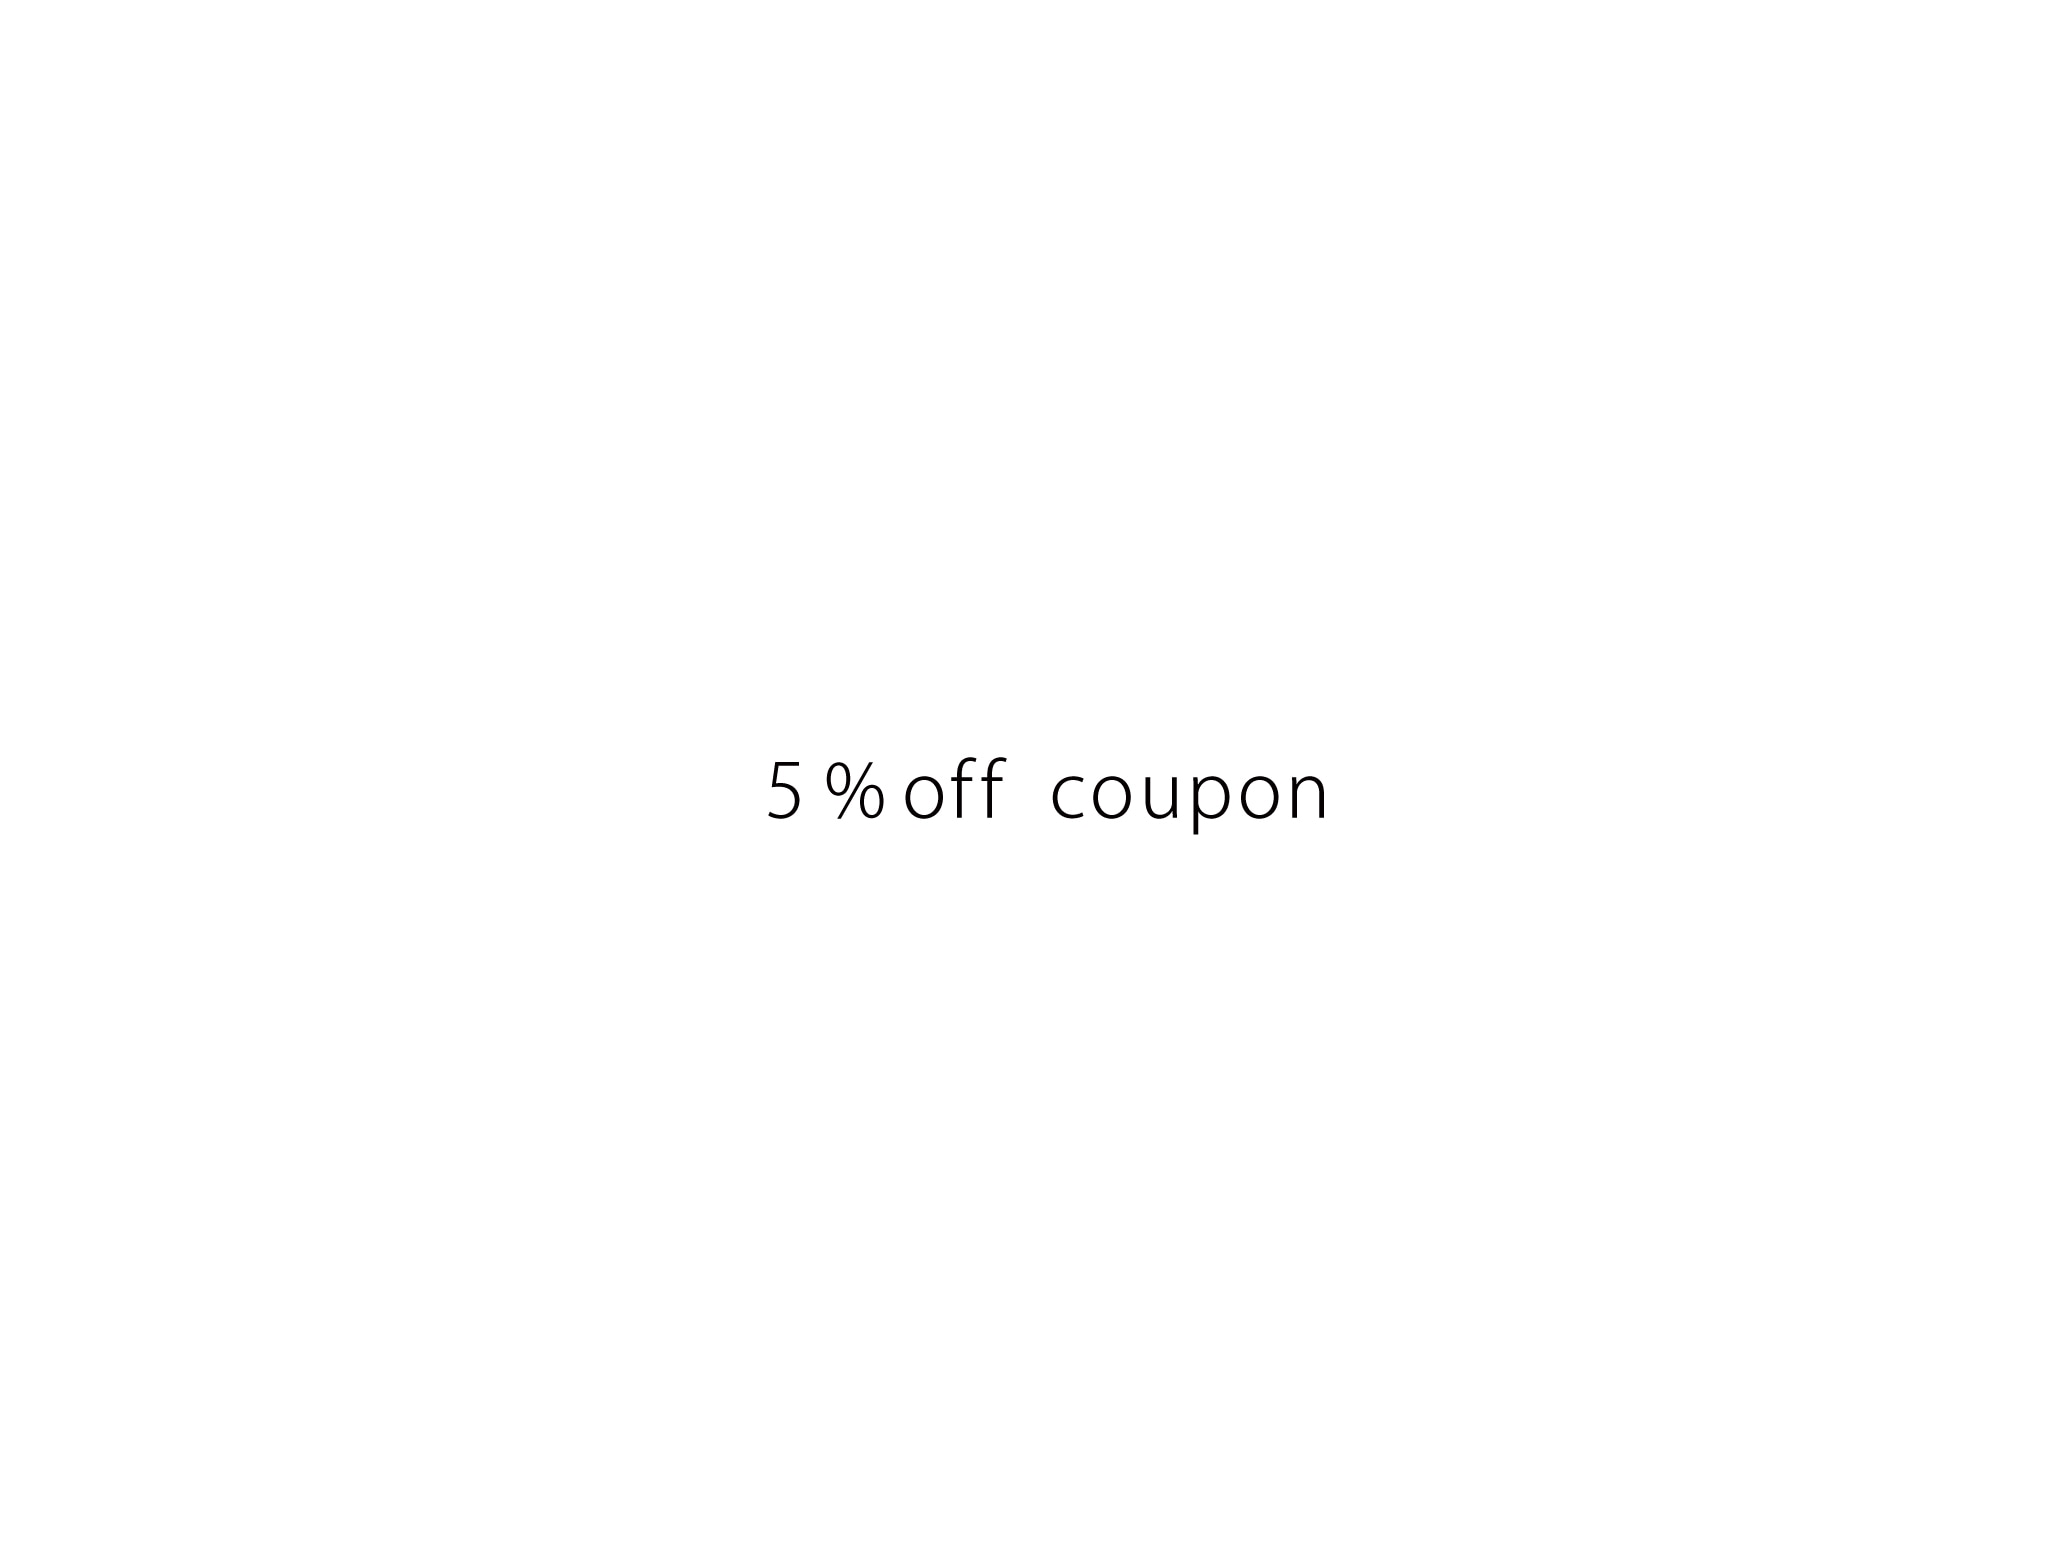 【 2020/11/7 - 11/21 】5%off クーポンプレゼント!